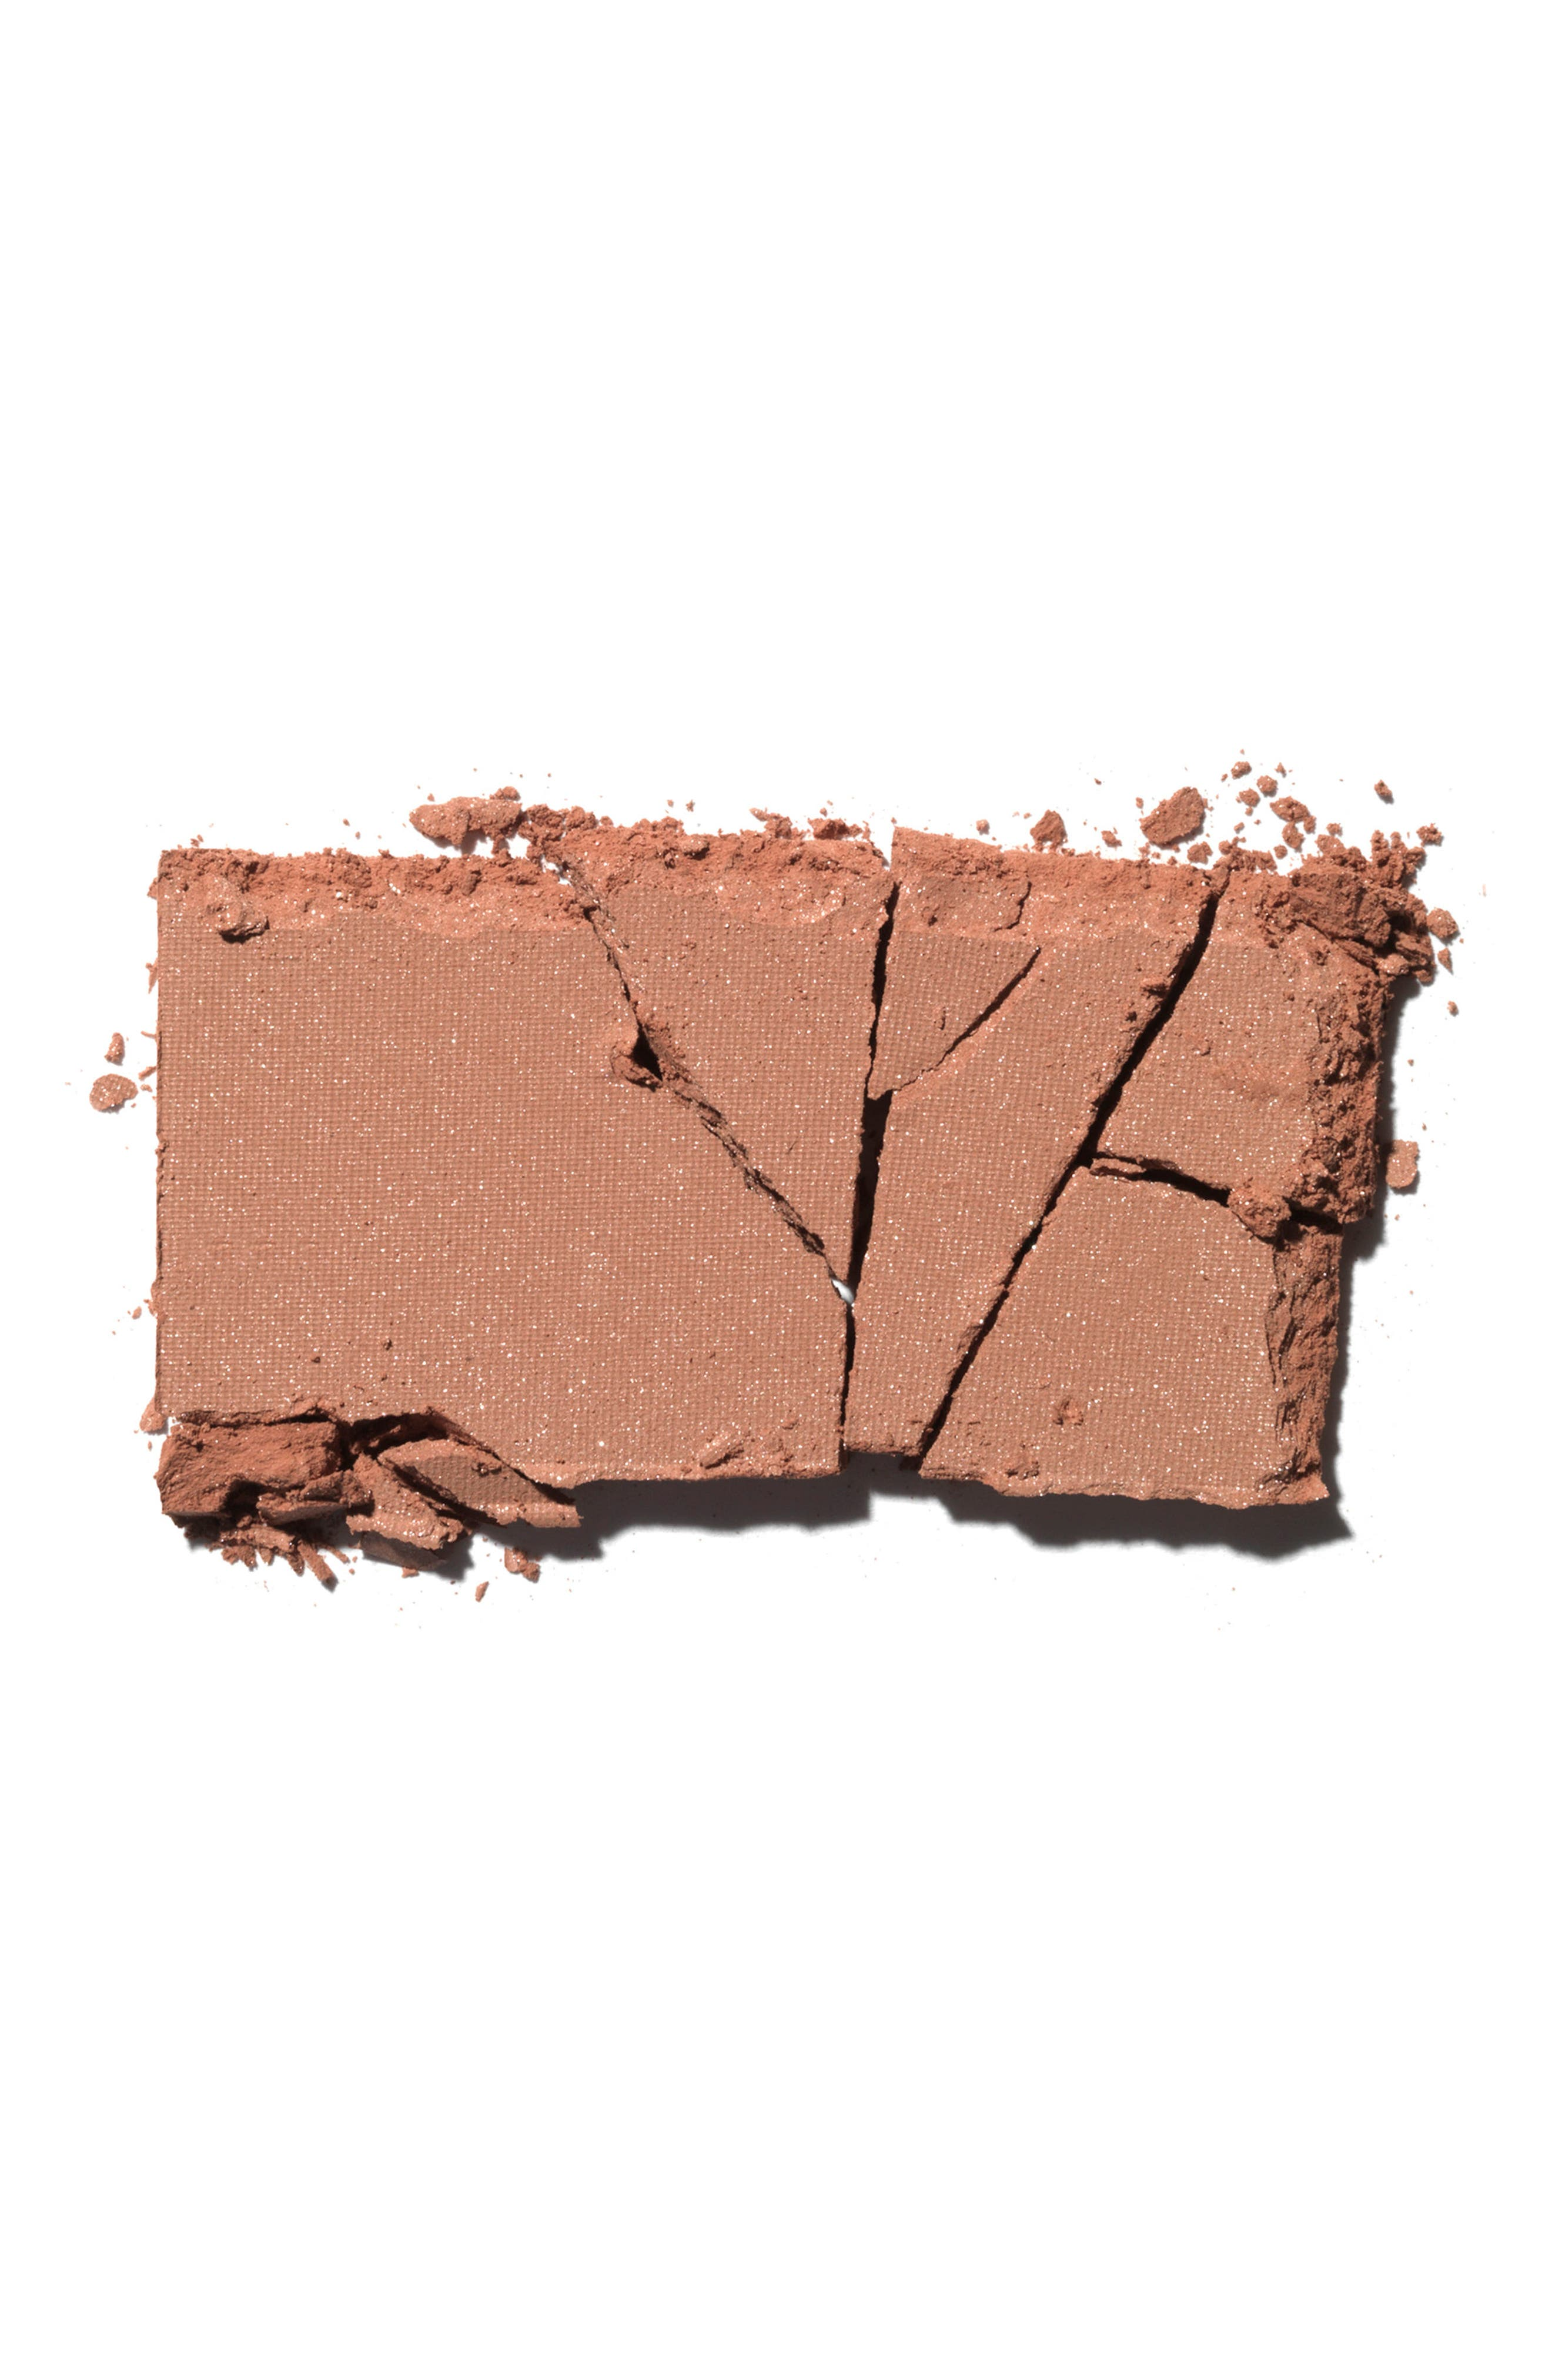 KEVYN AUCOIN BEAUTY,                             SPACE.NK.apothecary Kevyn Aucoin Beauty Pure Powder Glow,                             Alternate thumbnail 3, color,                             250